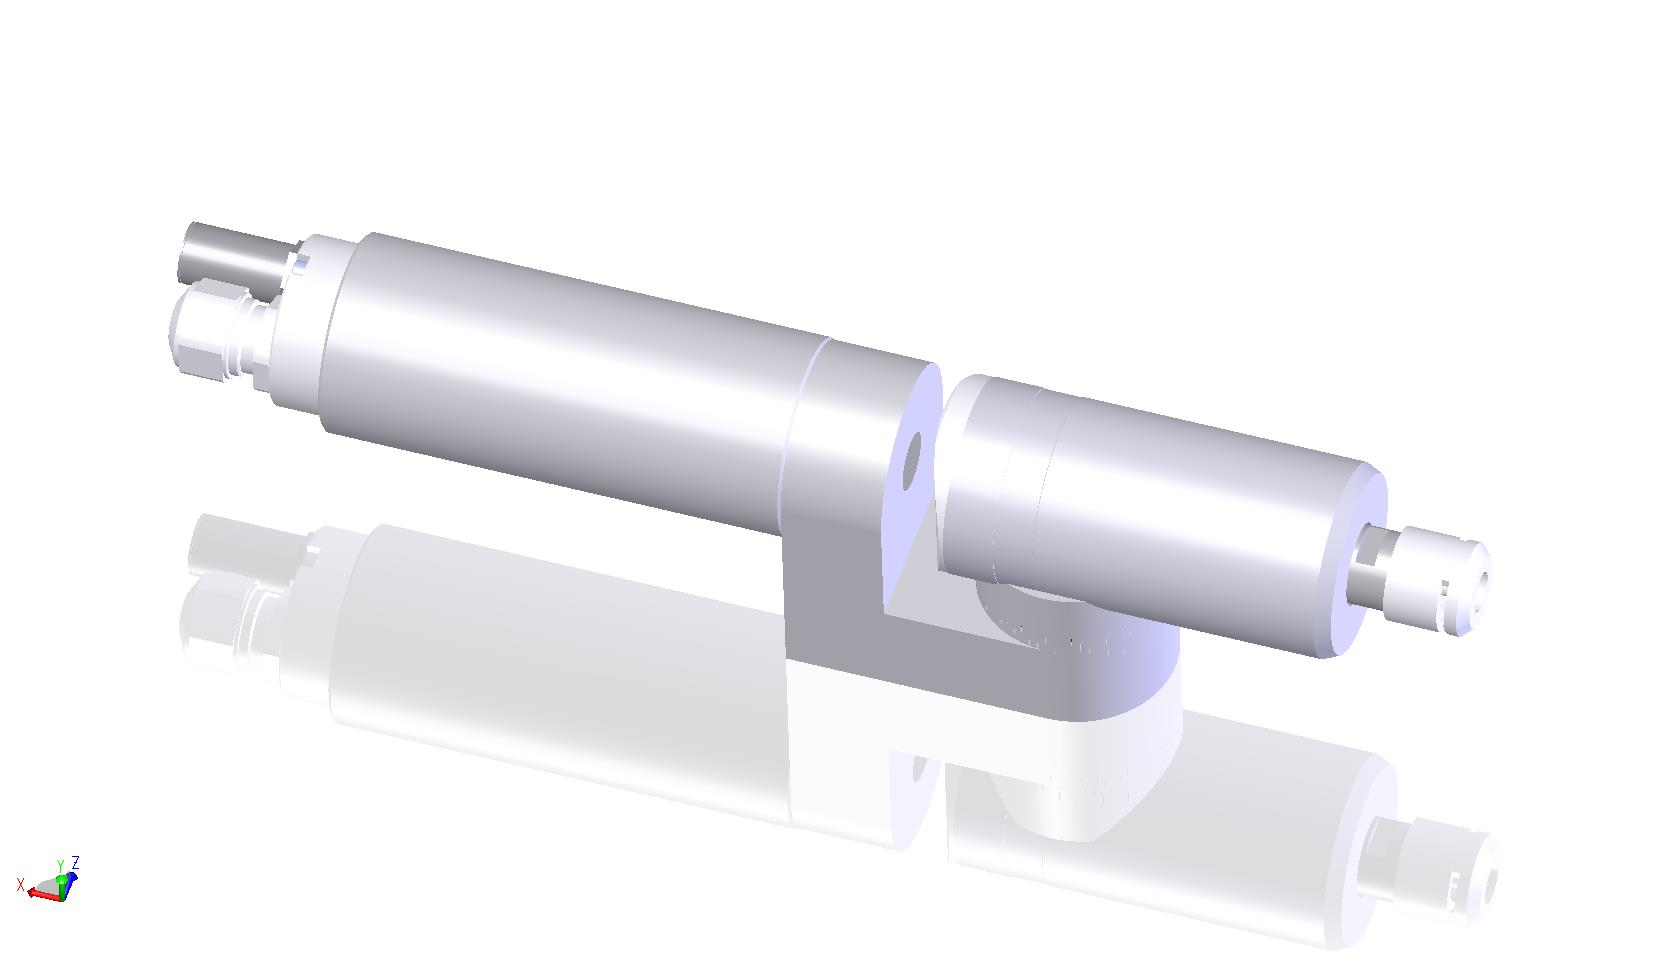 HT 25 S 60 CS - adjustable angle with 180° connector and long shaft